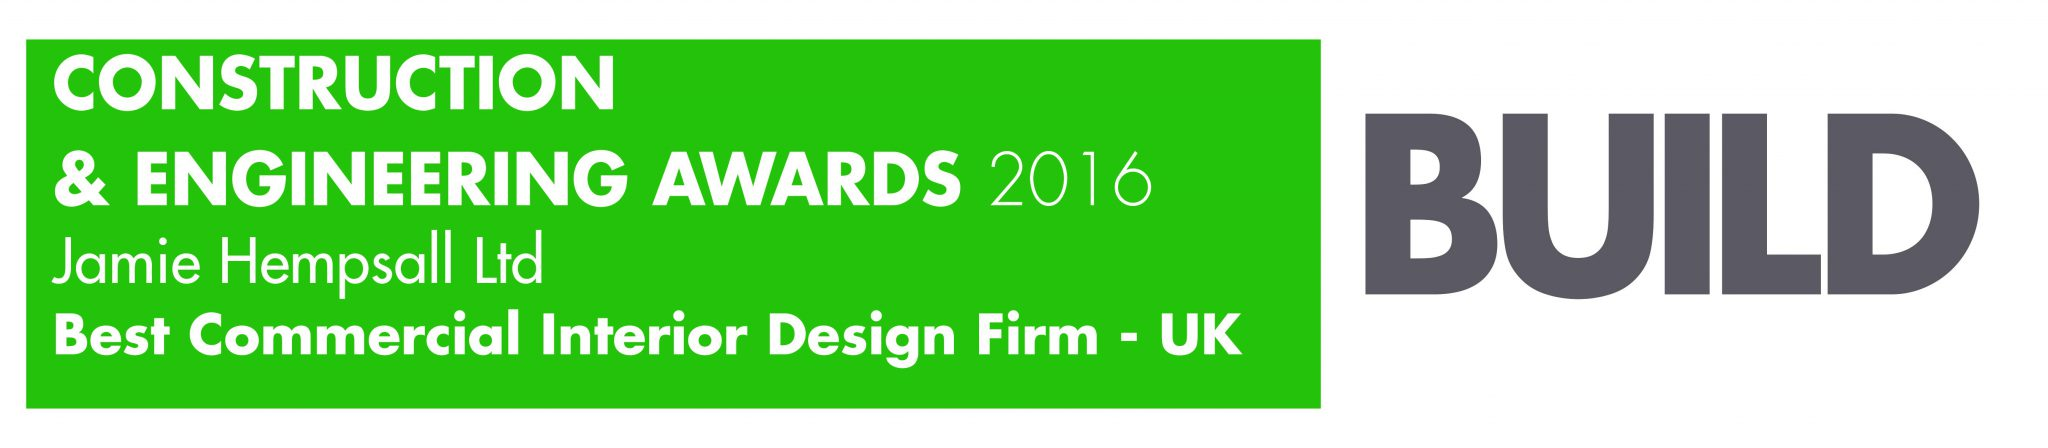 UK Constuction and Engineering awards 2016